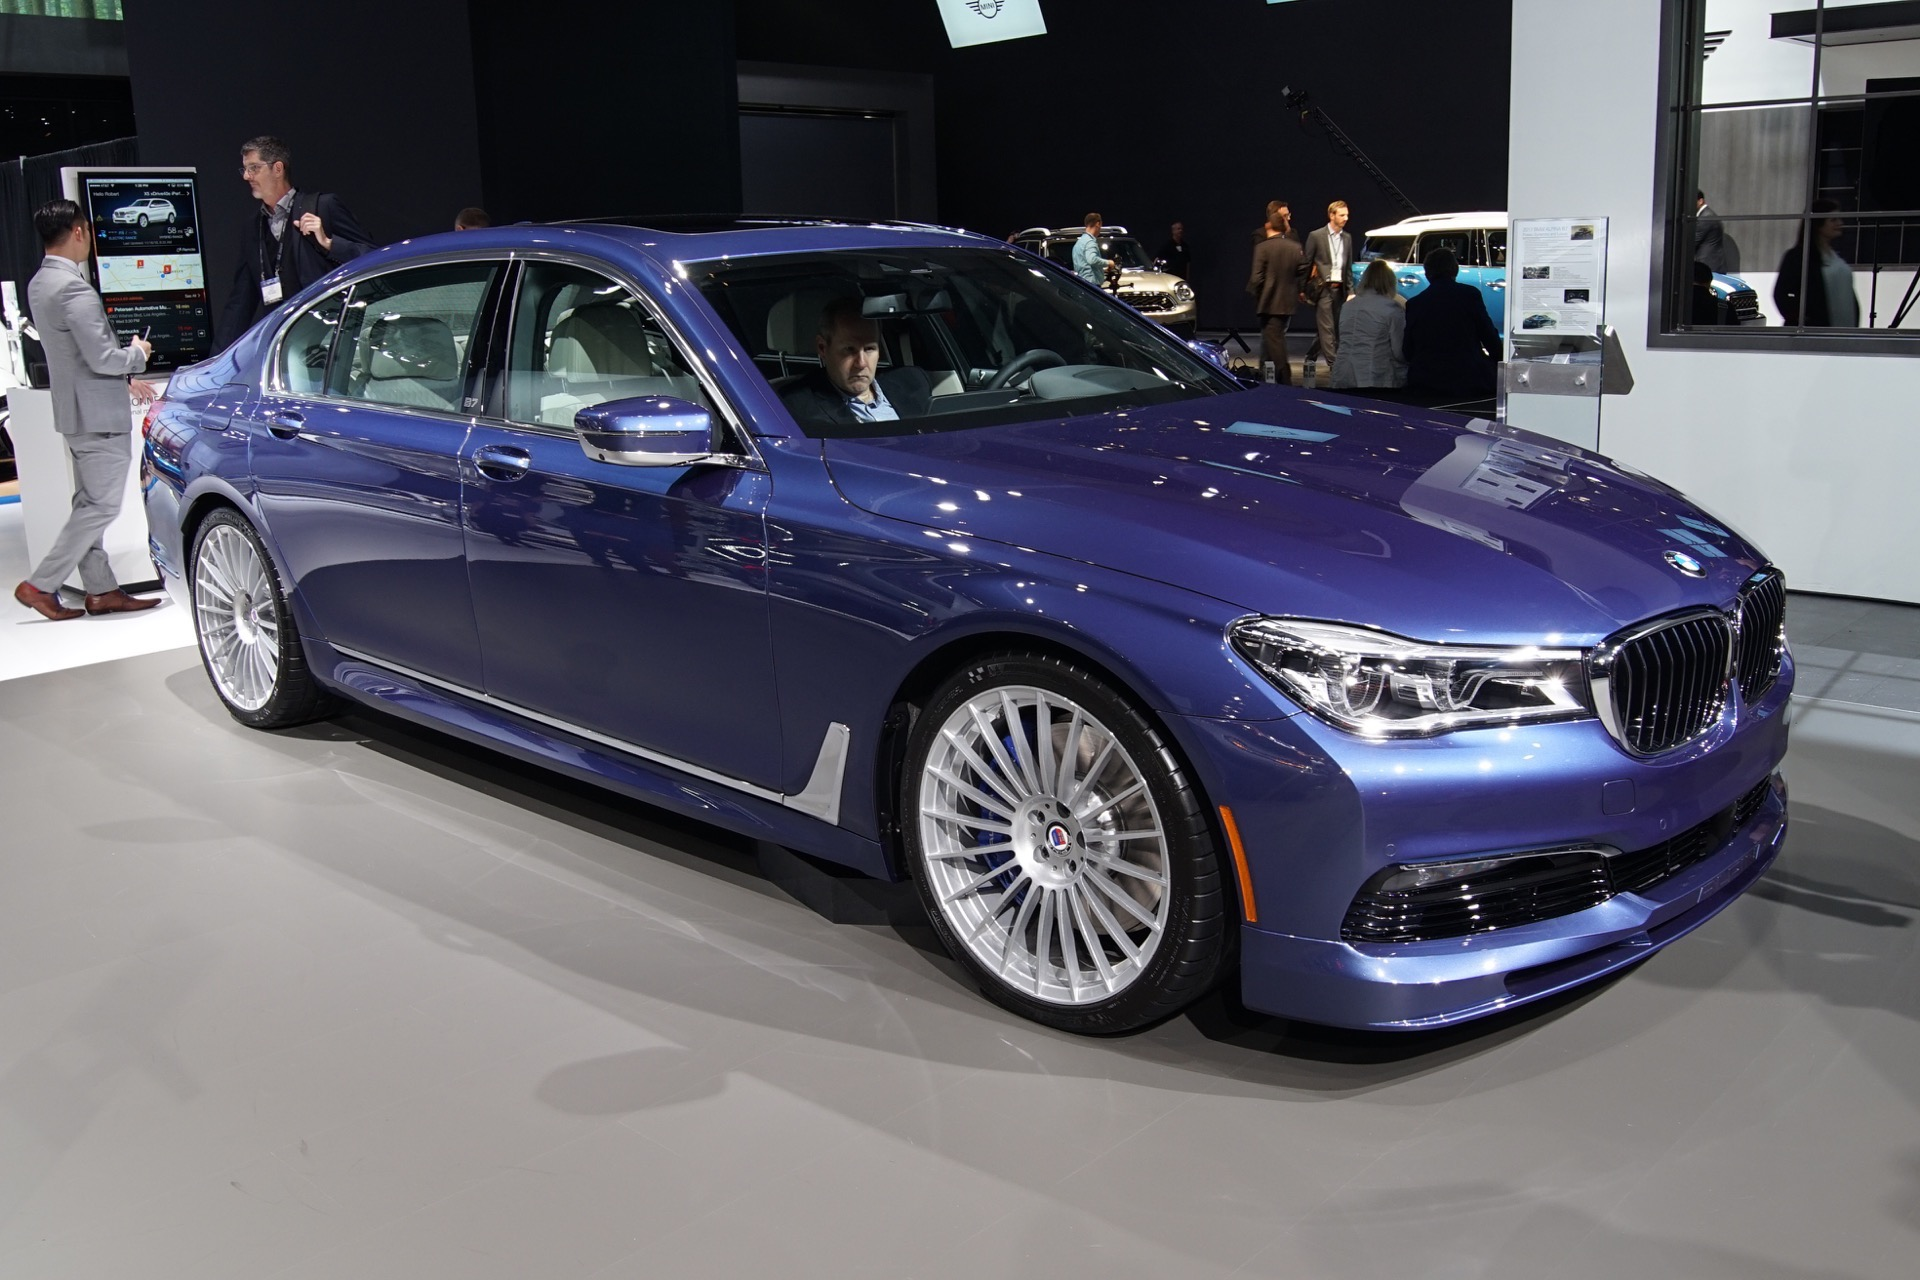 BMW develops two of the fastest sedans on the market